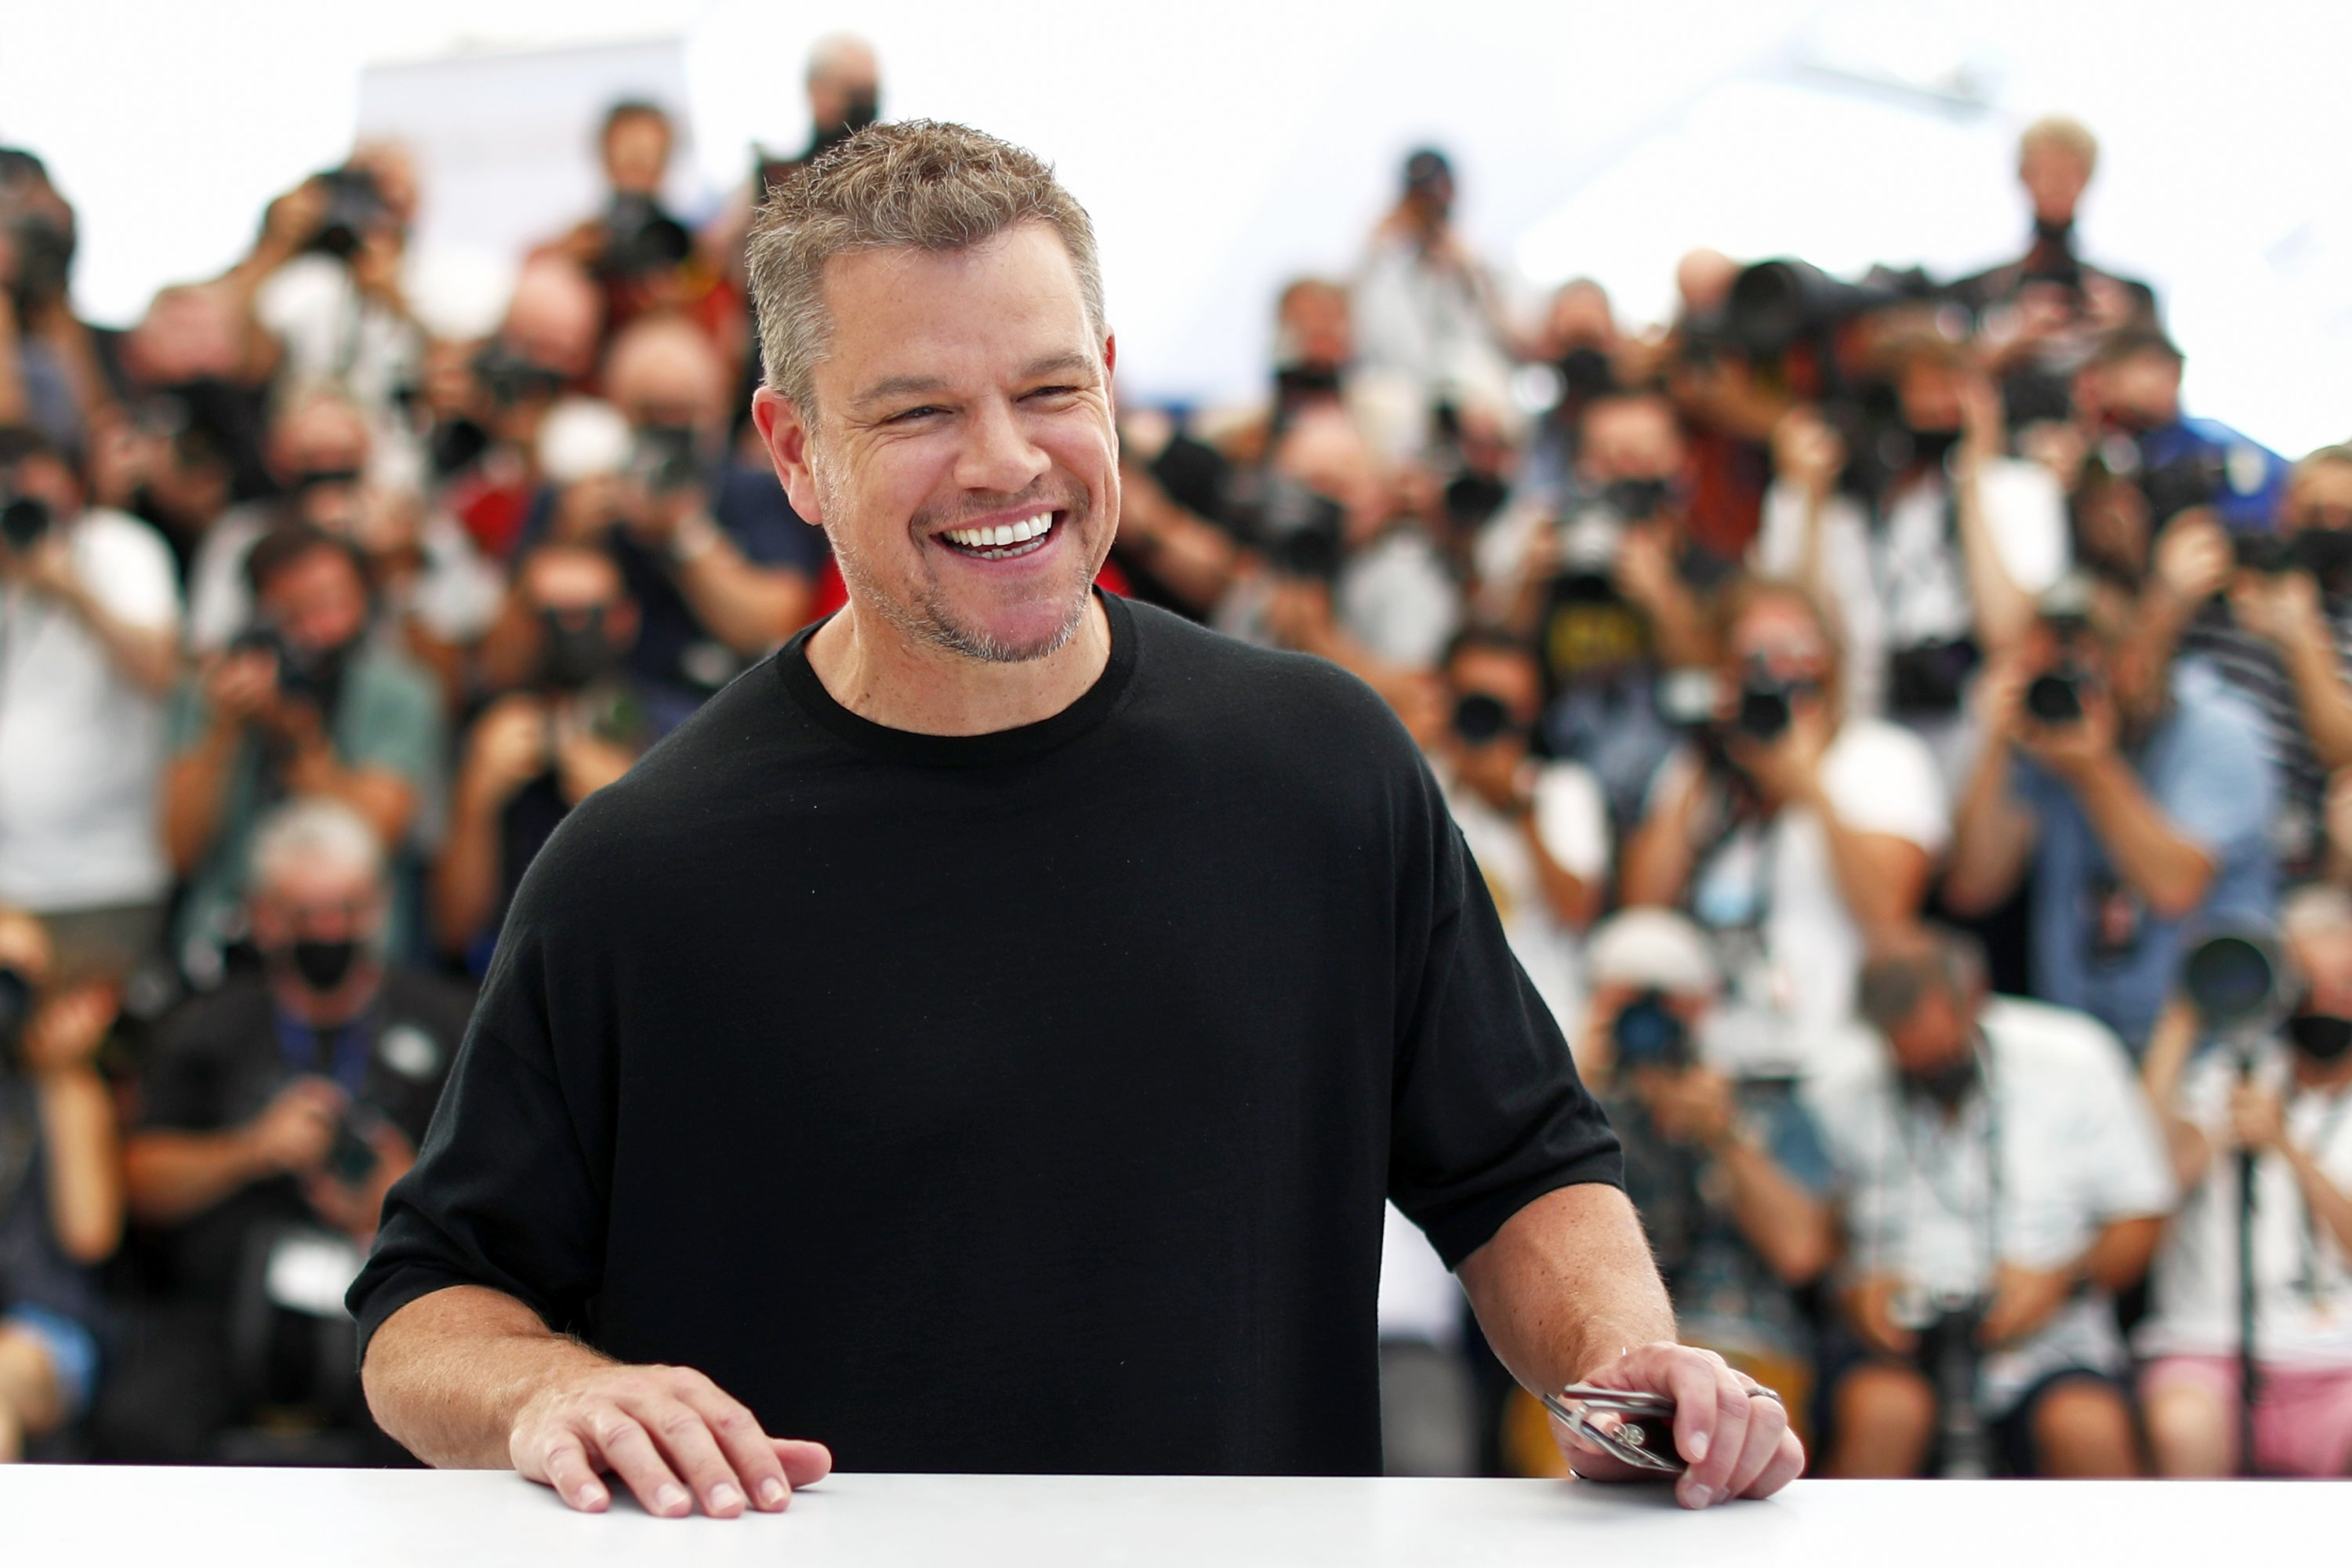 Actor Matt Damon poses during a photocall for the film 'Stillwater' at the 74th Cannes Film Festival in Cannes, France, July 9, 2021. (Reuters Photo)